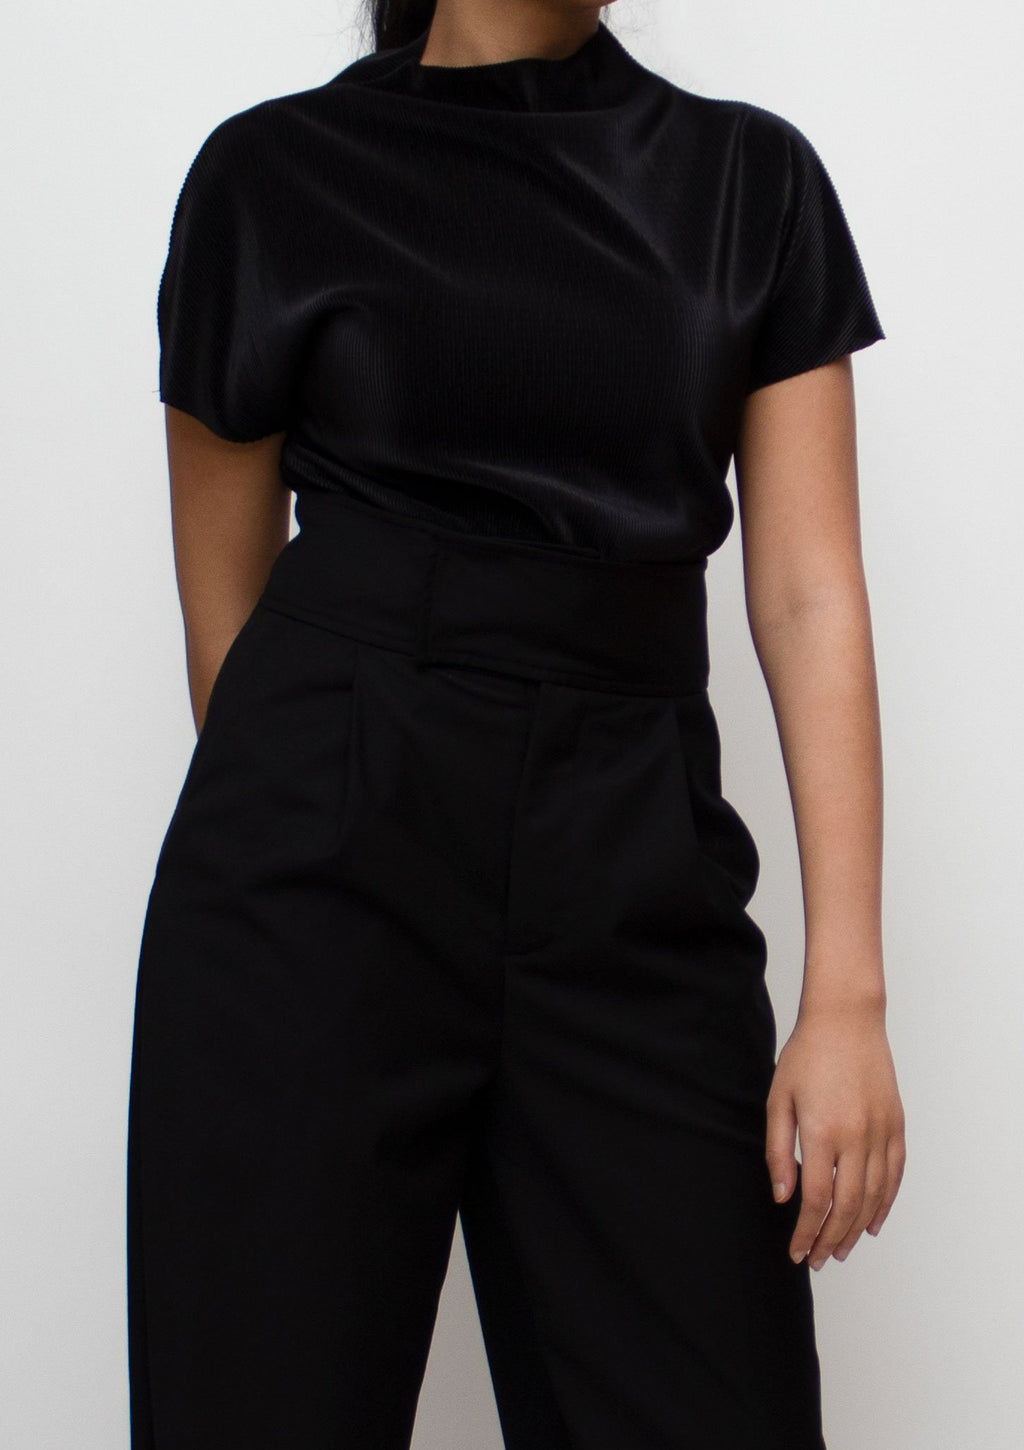 Black Pleats High Neck T-shirt